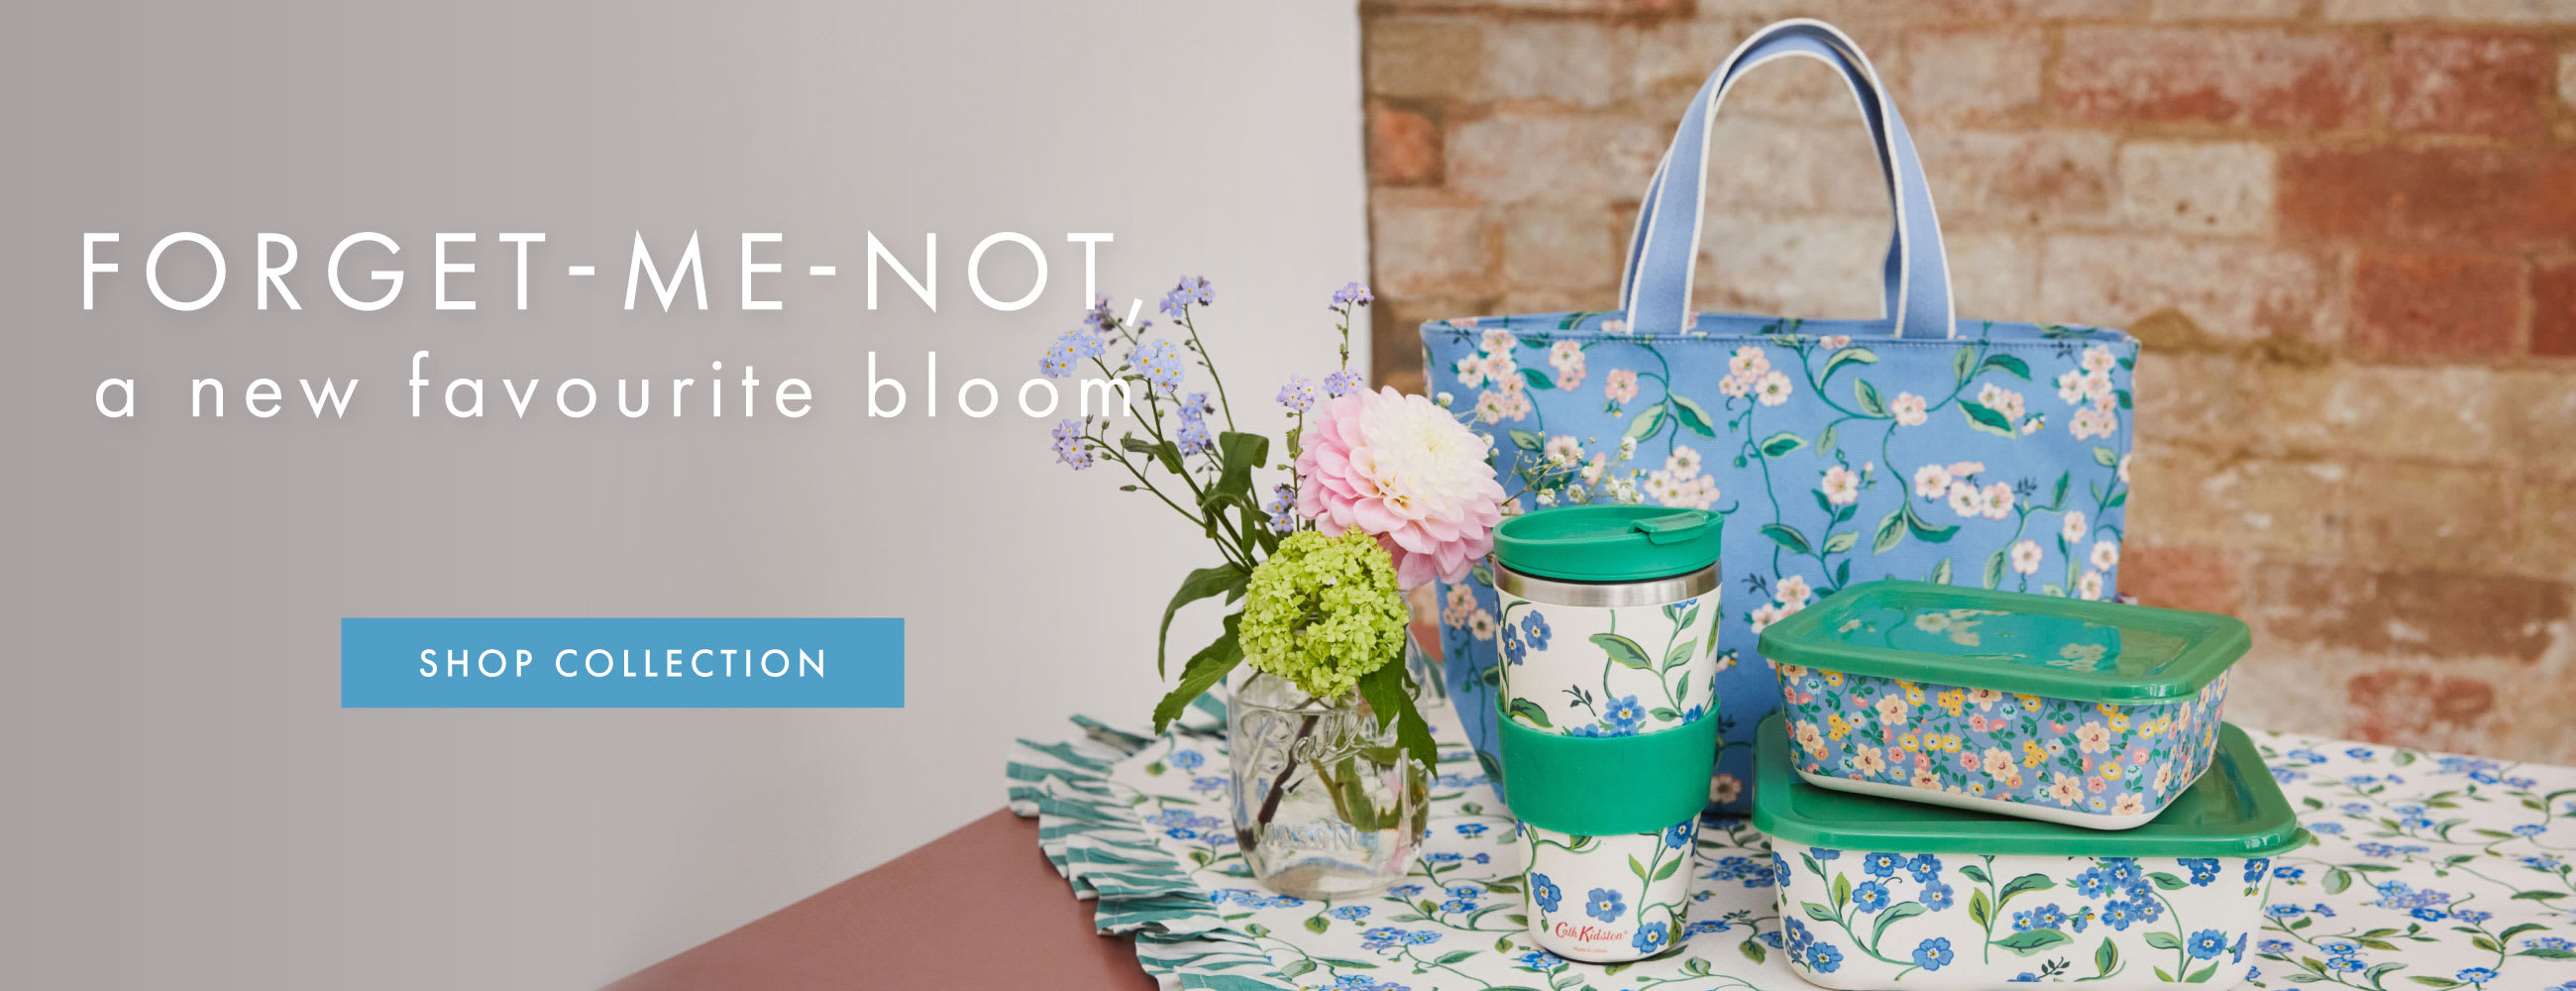 FORGET-ME-NOT: A New Favourite Bloom